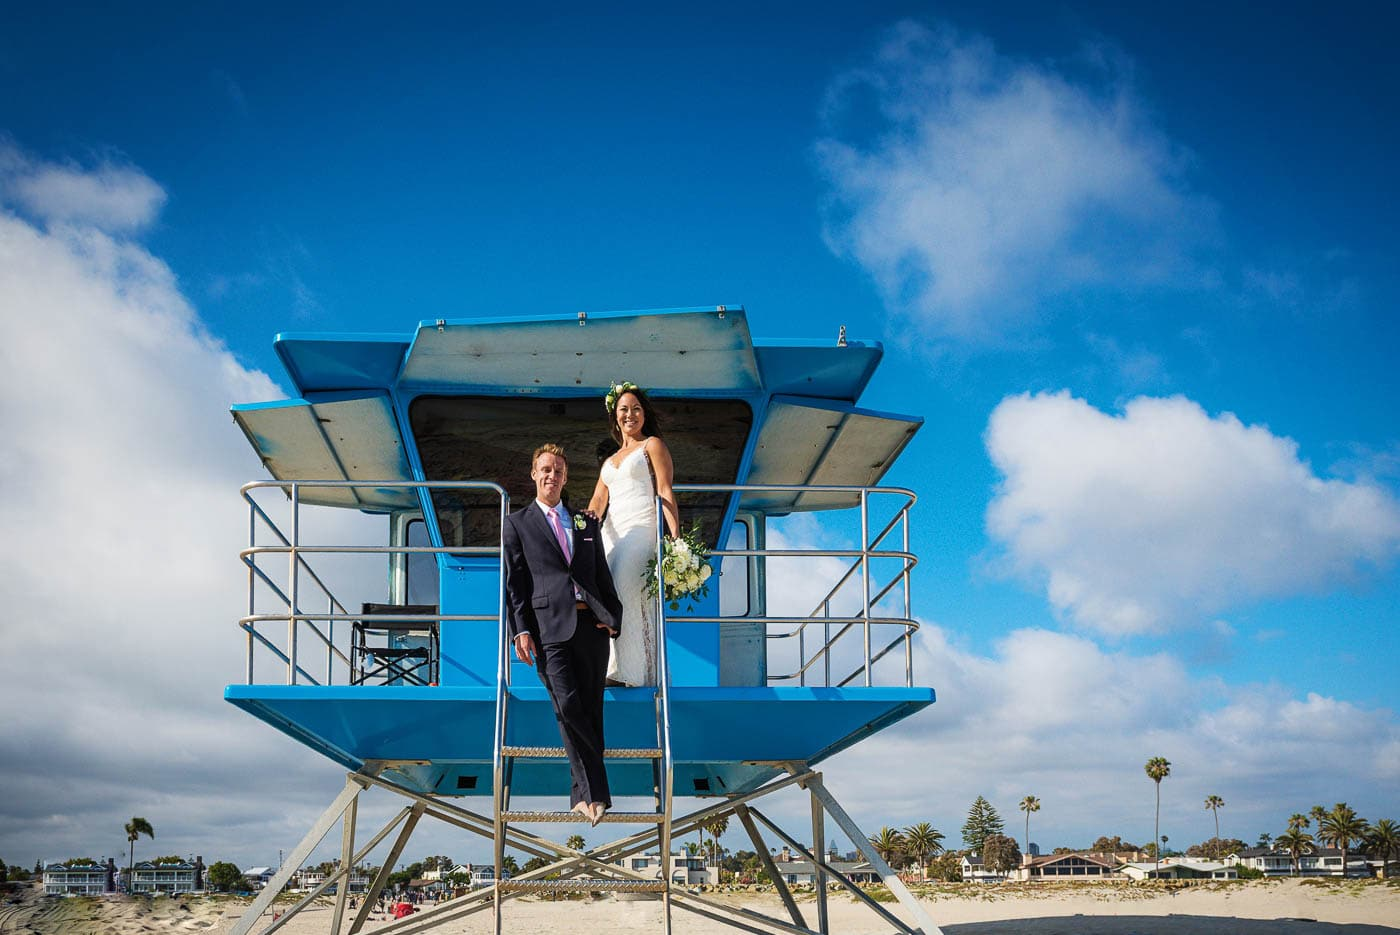 Bride and groom portrait at lifeguard tower